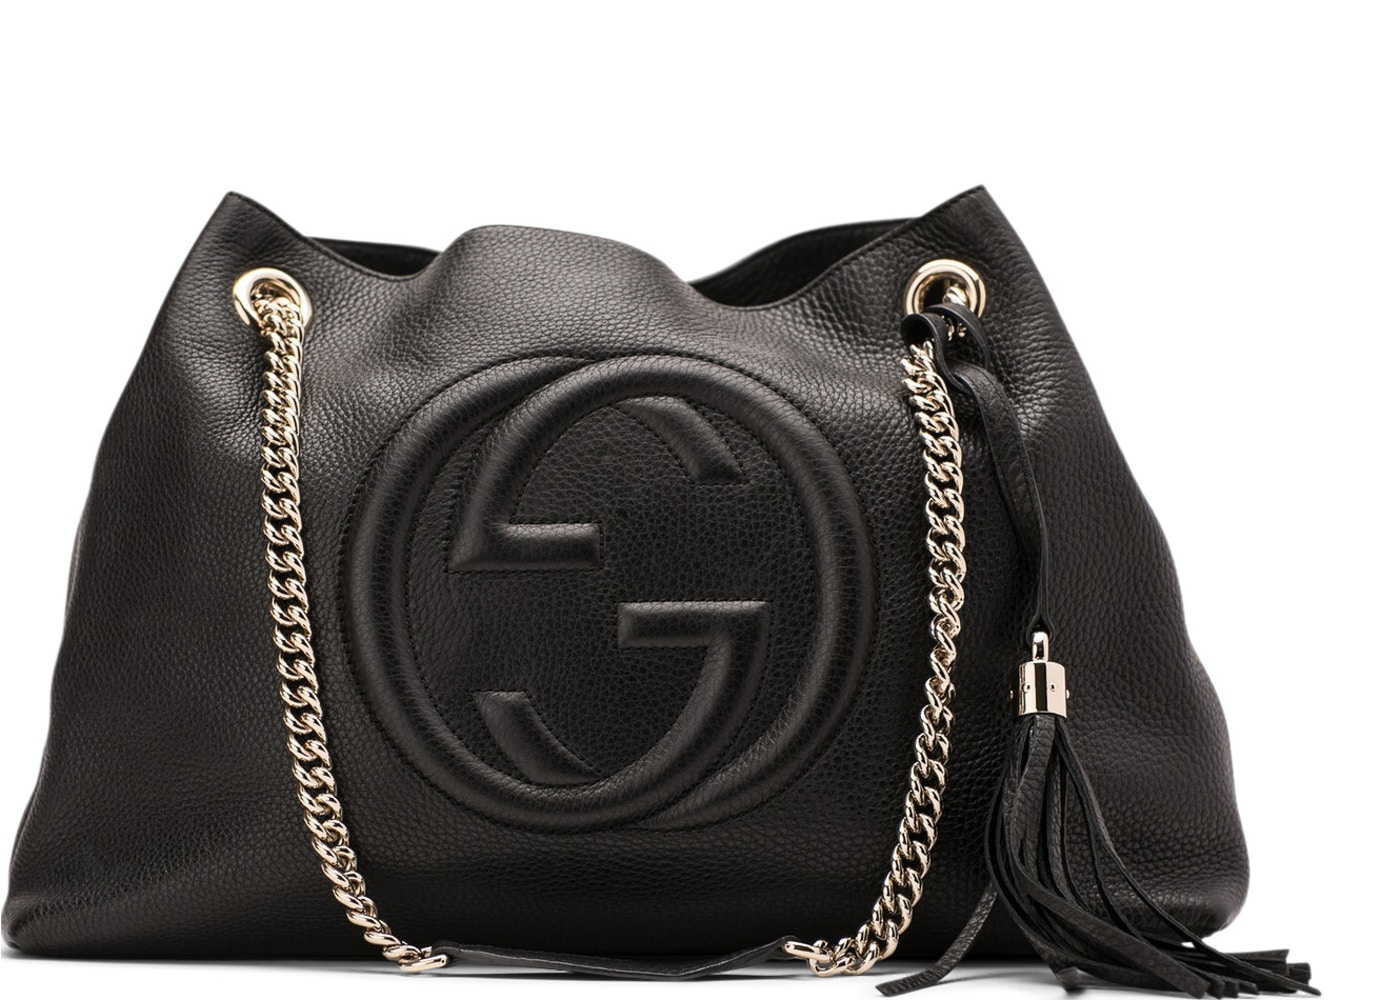 Gucci Soho Shoulder Bag Chain Strap Medium Black a10c8a029